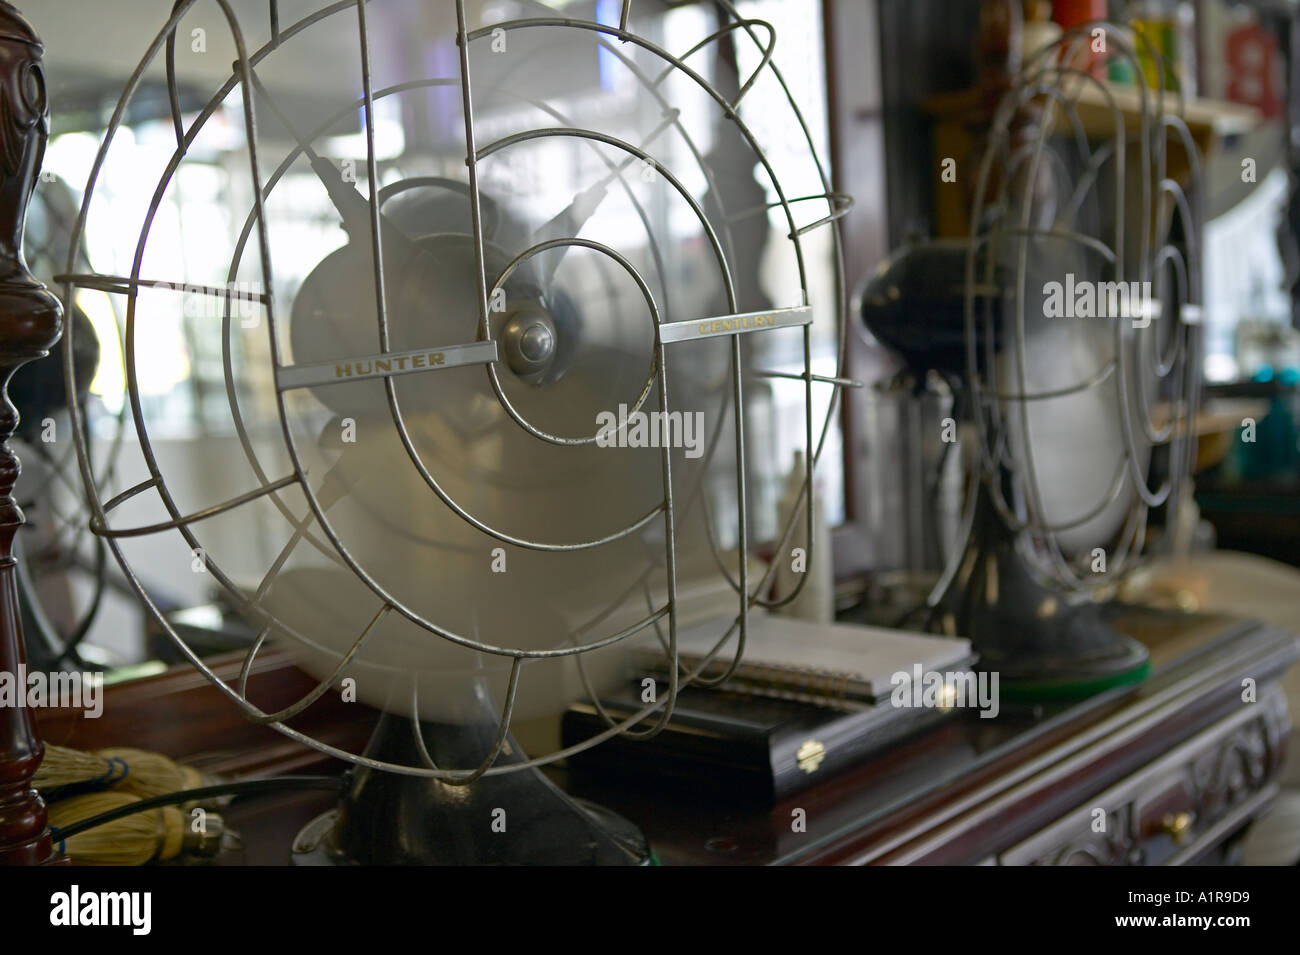 Antique Hunter Century fan in barber shop - Stock Image